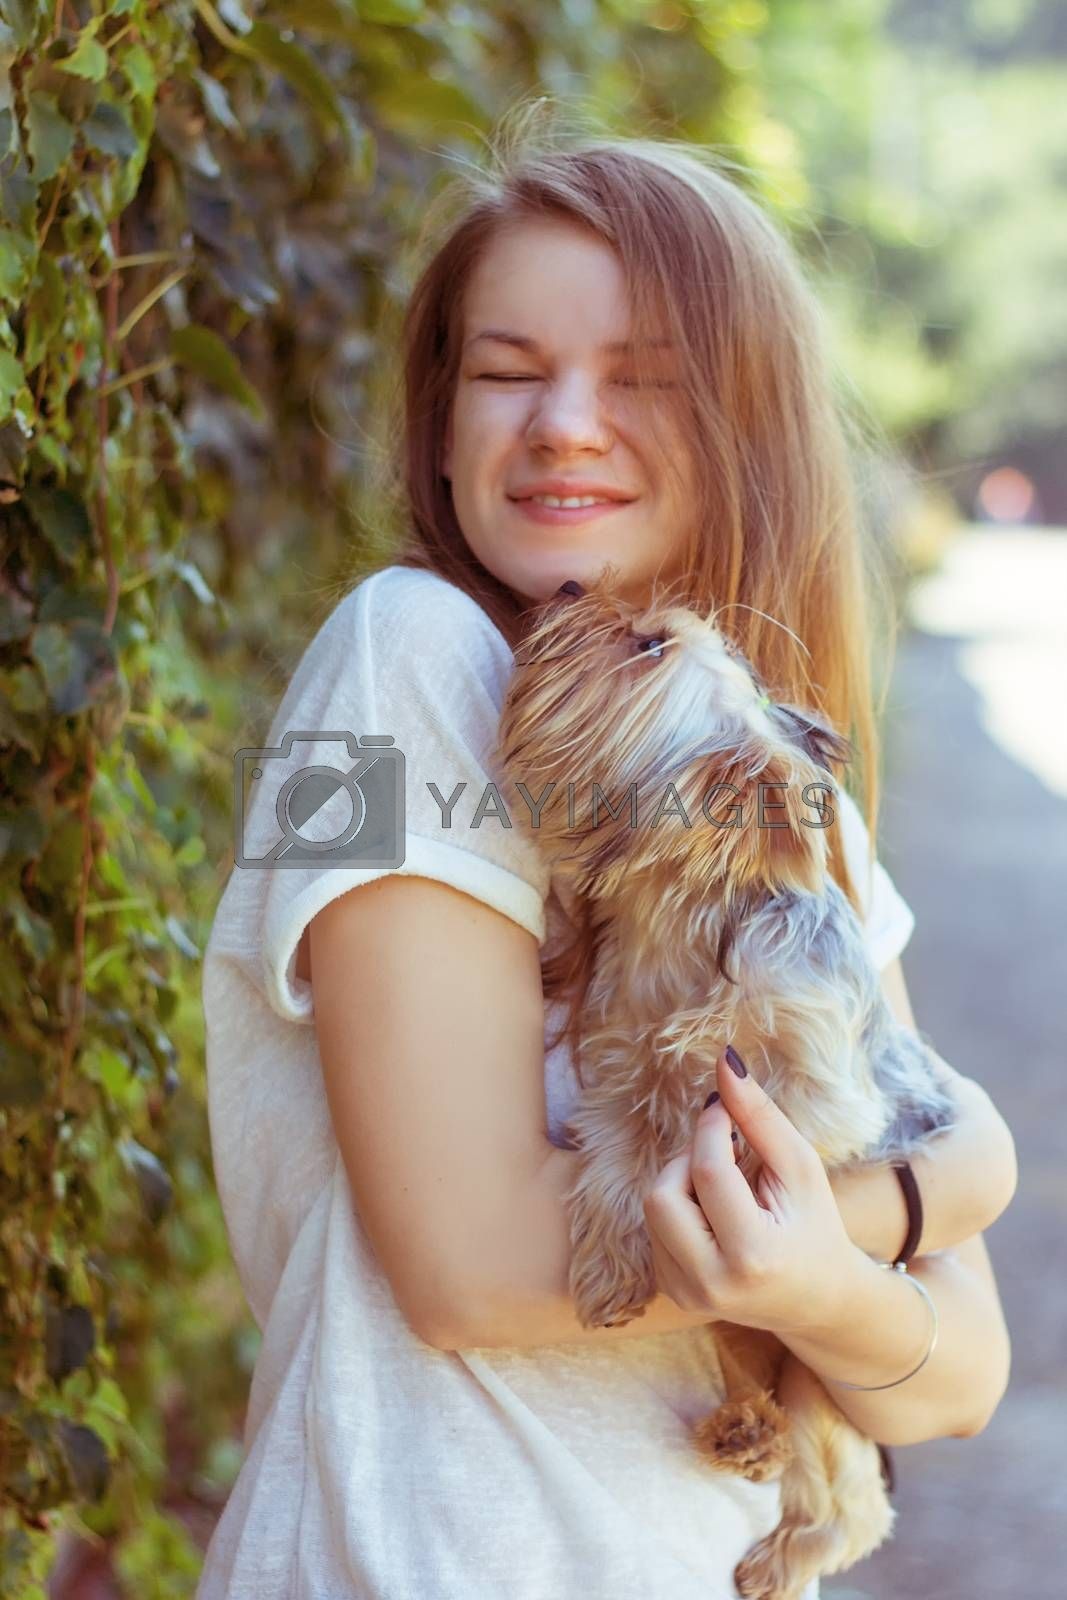 Royalty free image of Happy young girl owner with yorkshire terrier dog by victosha